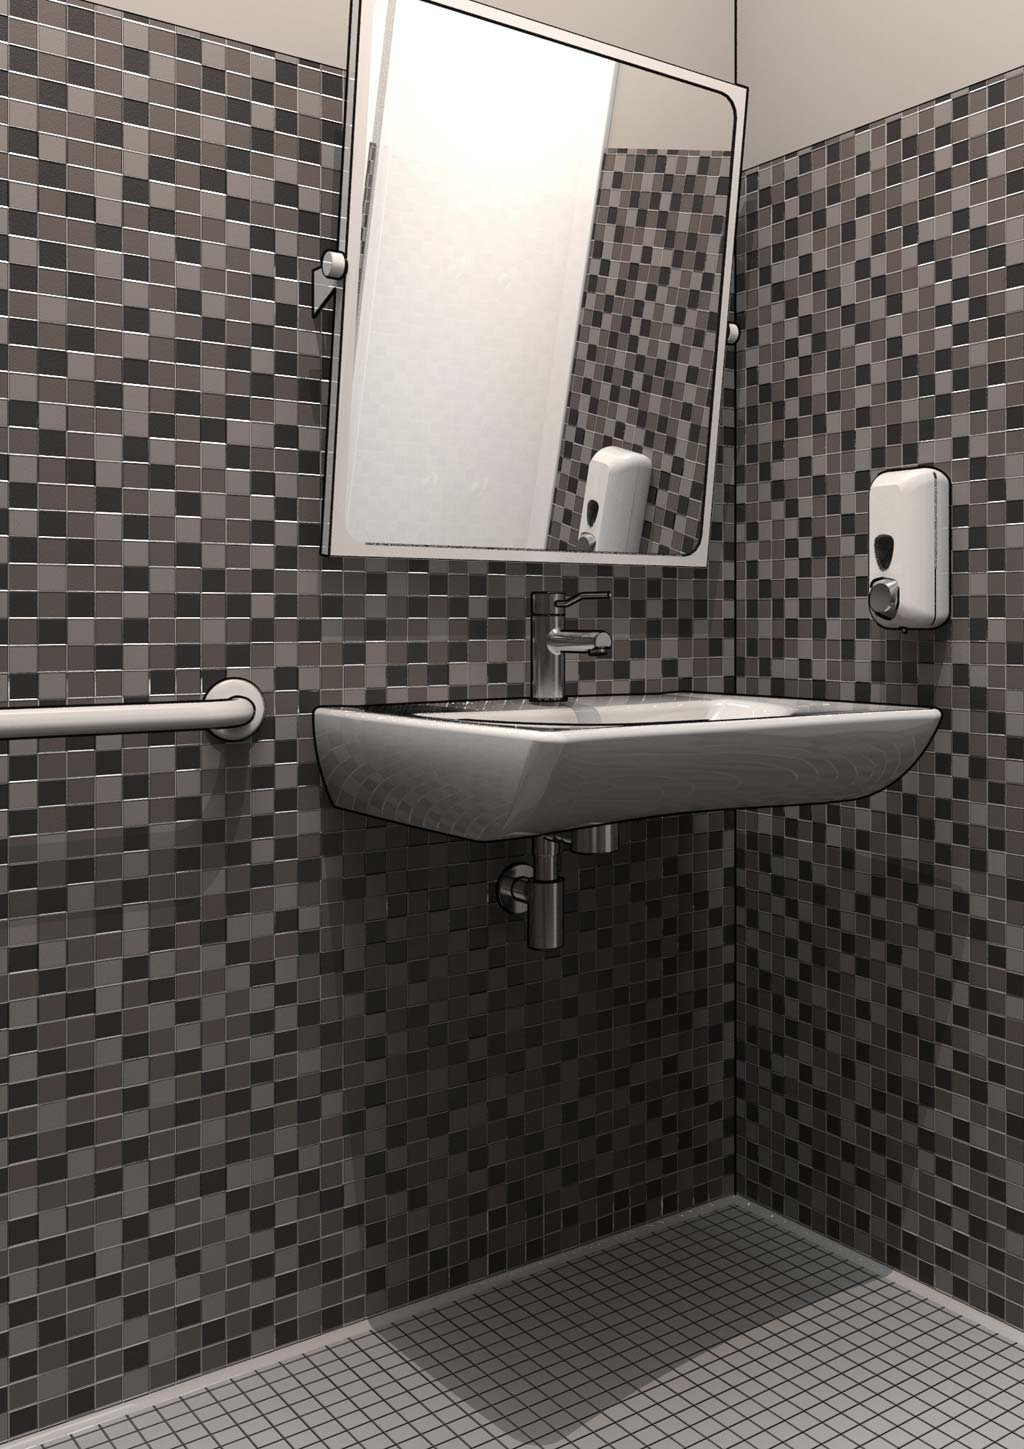 Lavabo 3d Dwg.Disabled Bathroom Design Dwg Drawings In 3d